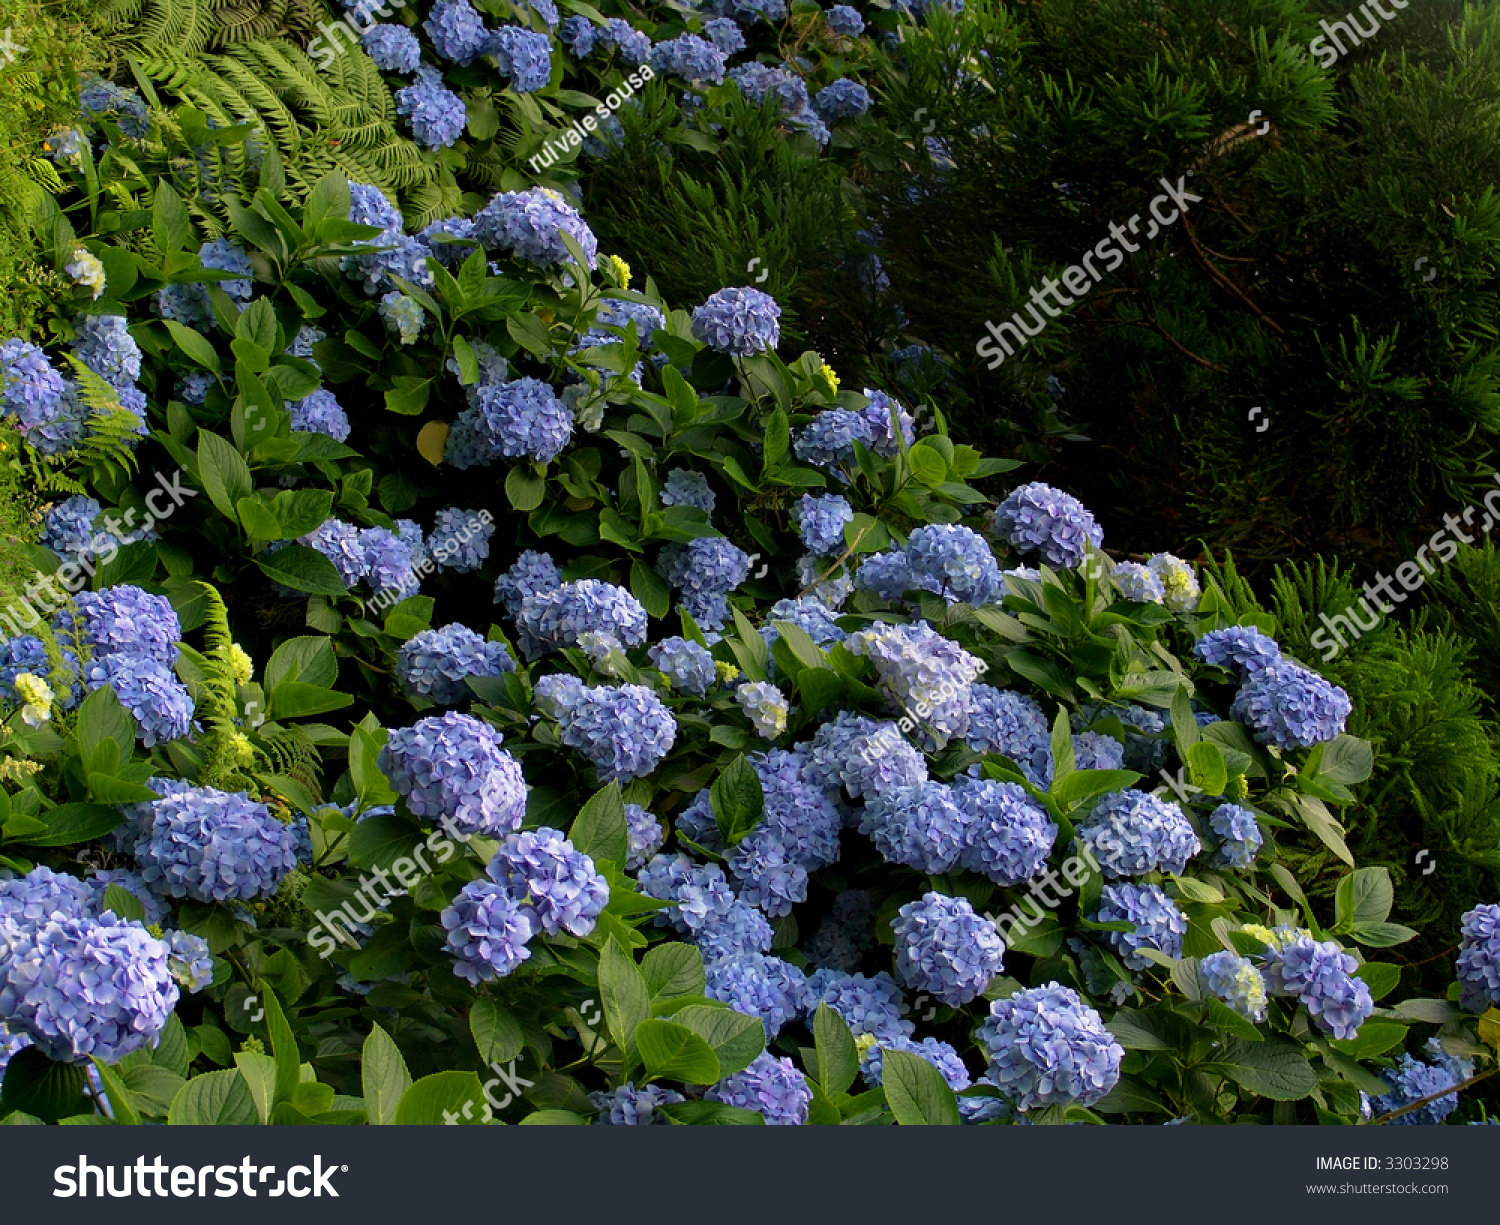 hortensia hydrangea macrophylla typical flower azores stock photo 3303298 shutterstock. Black Bedroom Furniture Sets. Home Design Ideas